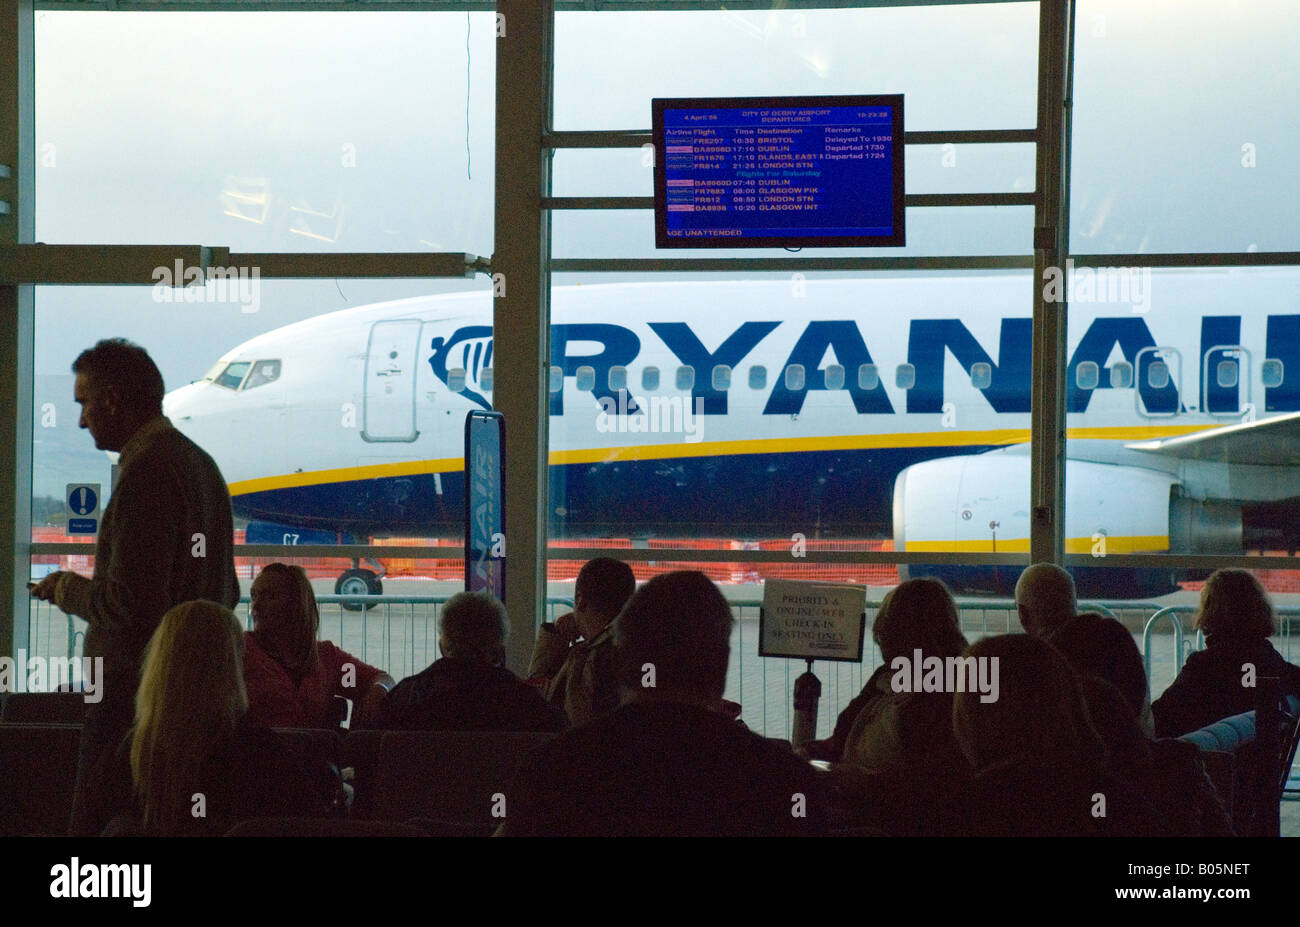 City of Derry Airport Northern Ireland Passengers in the departure lounge watch an aircraft taxi to the stand - Stock Image